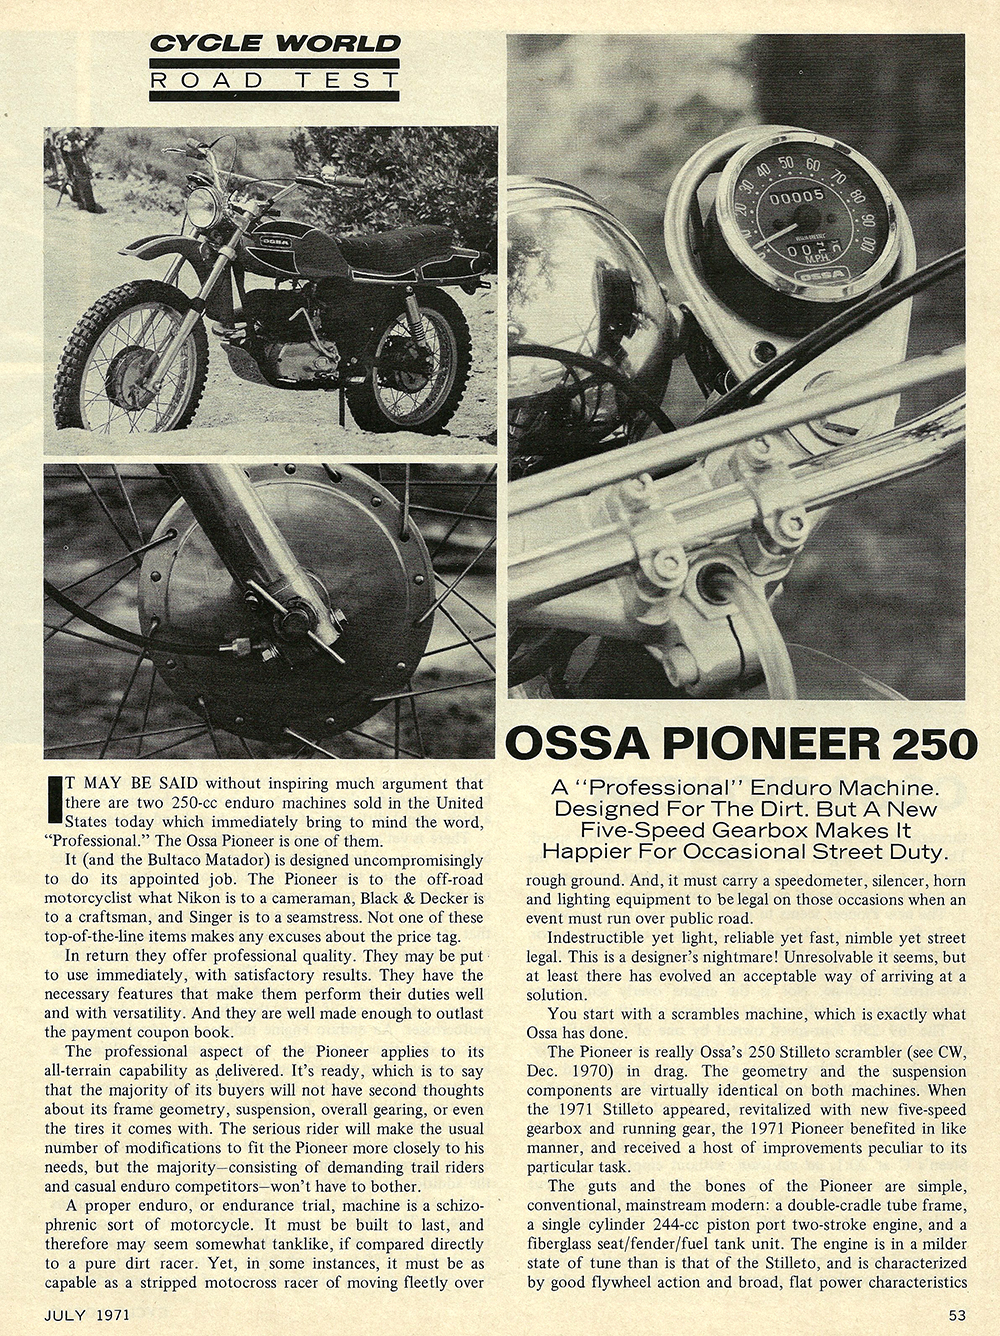 1971 Ossa Pioneer 250 road test 01.jpg